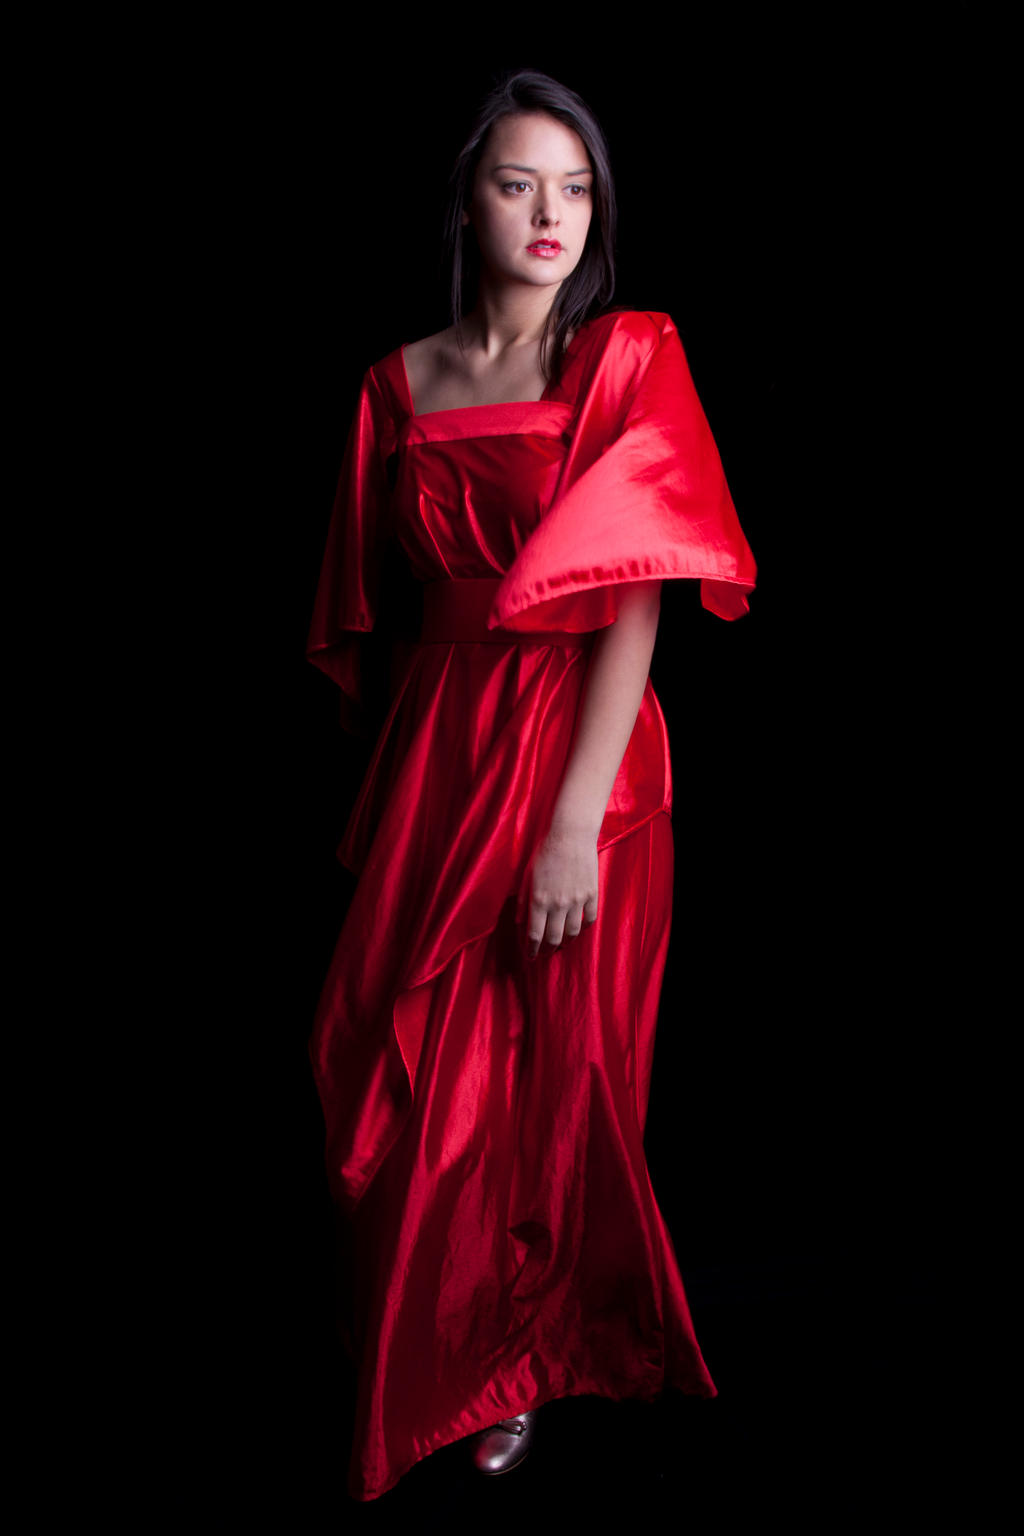 Woman in a red dress 8 by CathleenTarawhiti